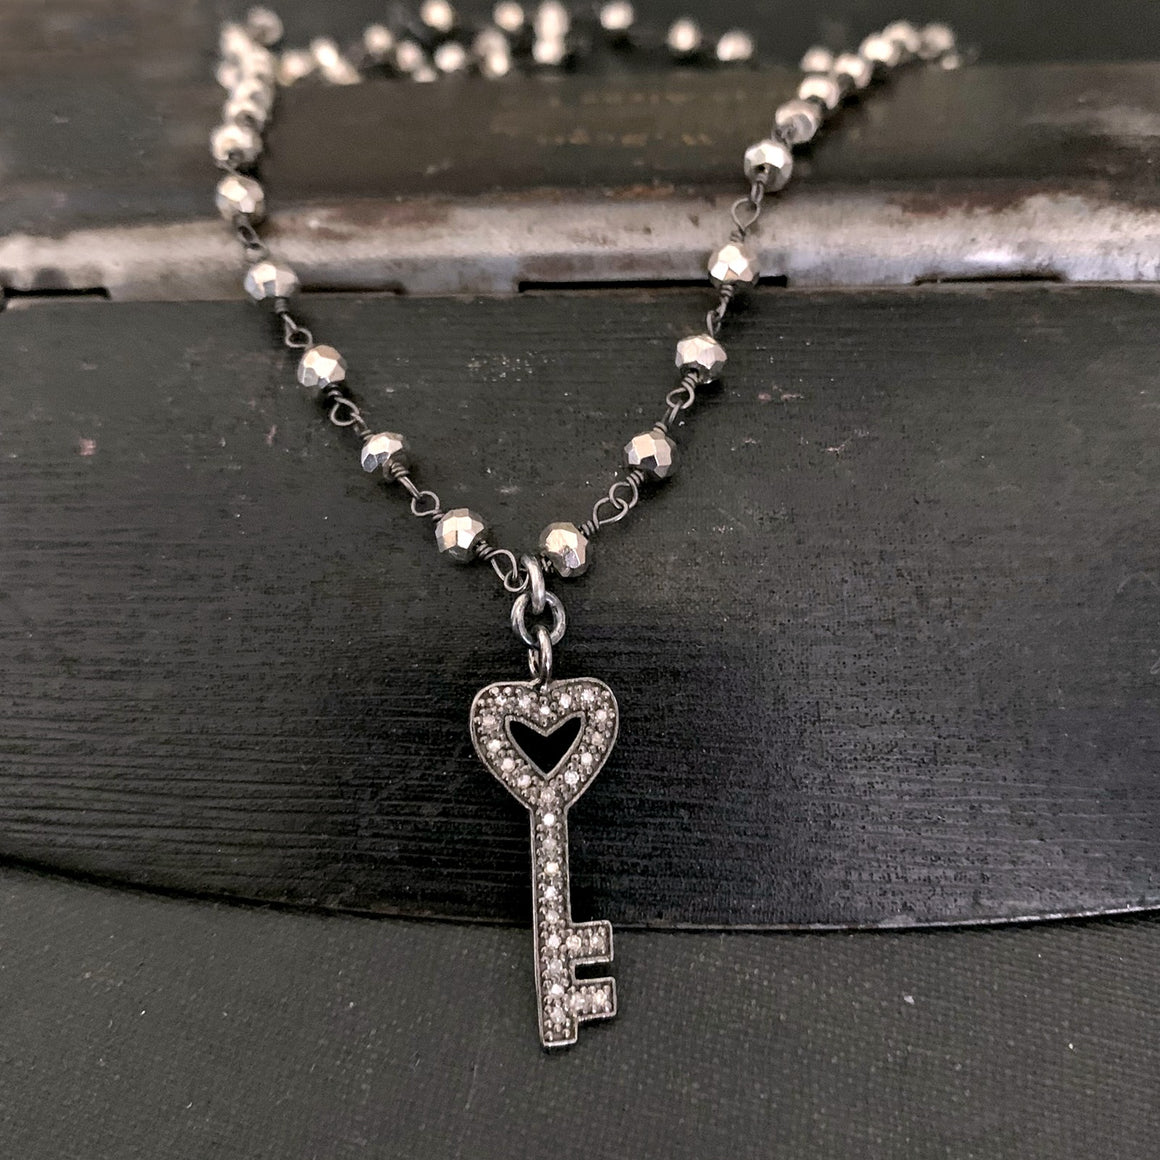 Pyrite Rosary Bead Chain DIAMOND KEY Heart Necklace - ViaLove Designs